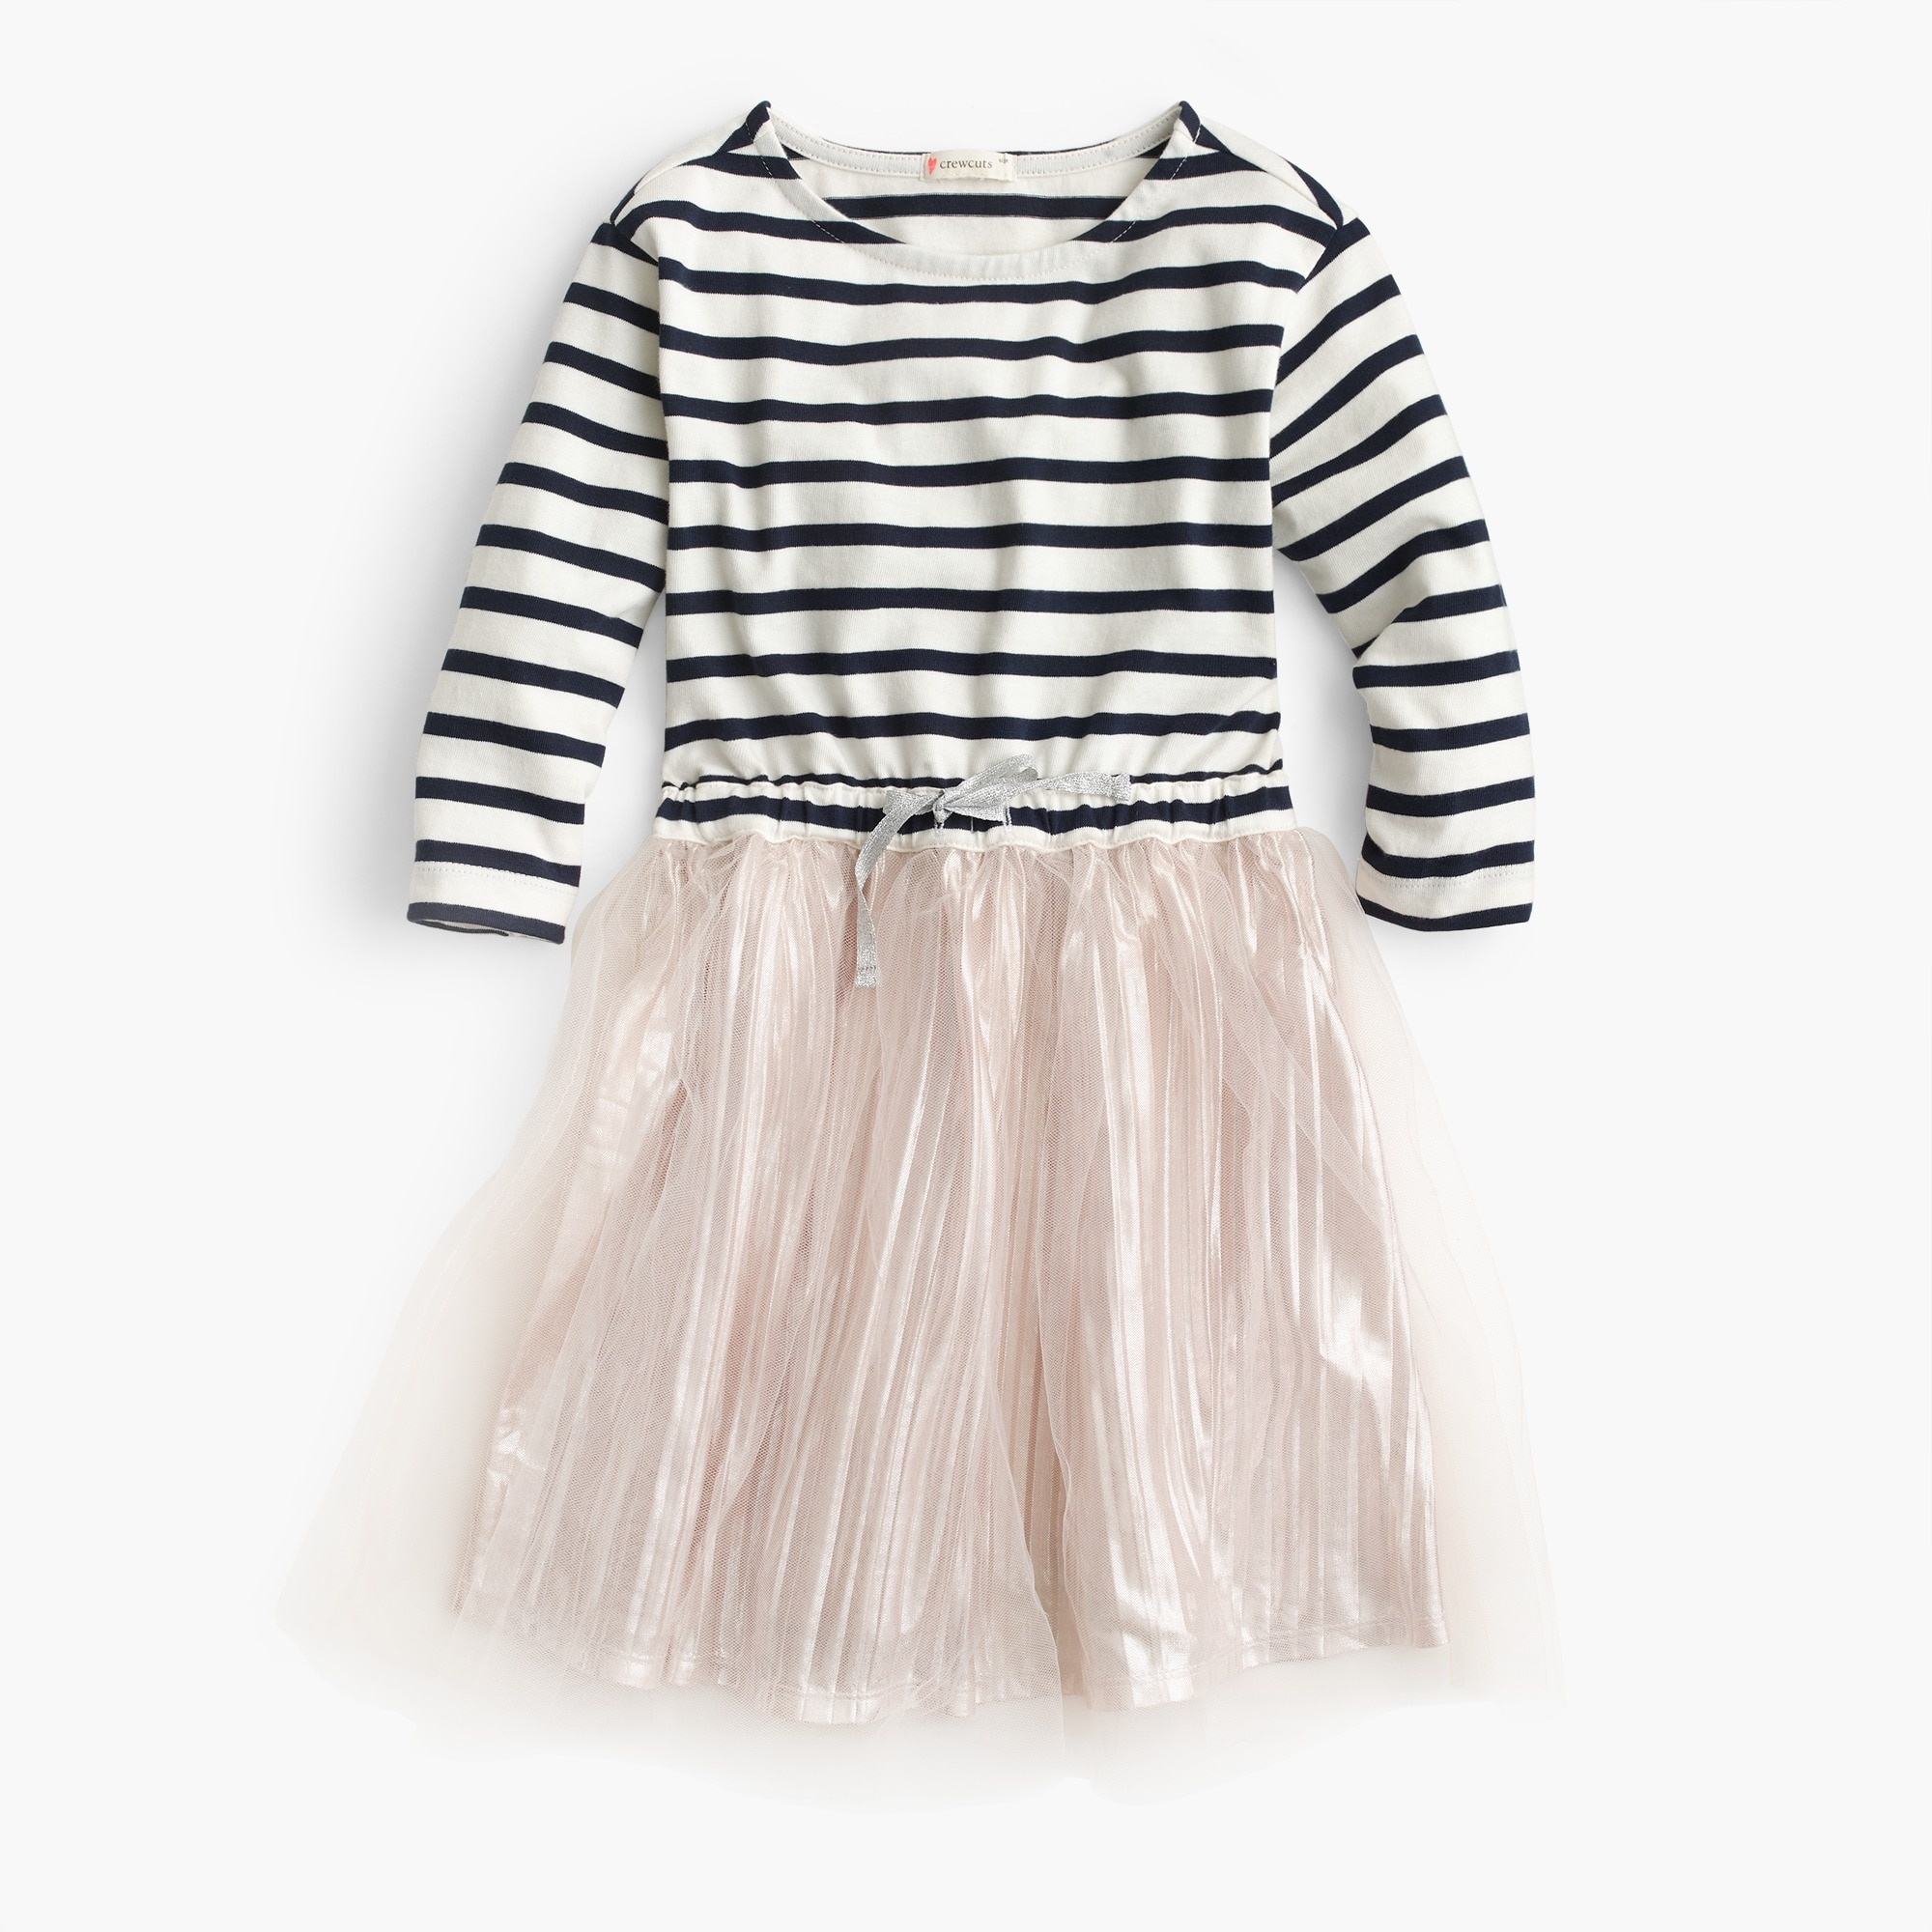 Image 1 for Girls' stripe-and-shimmer dress